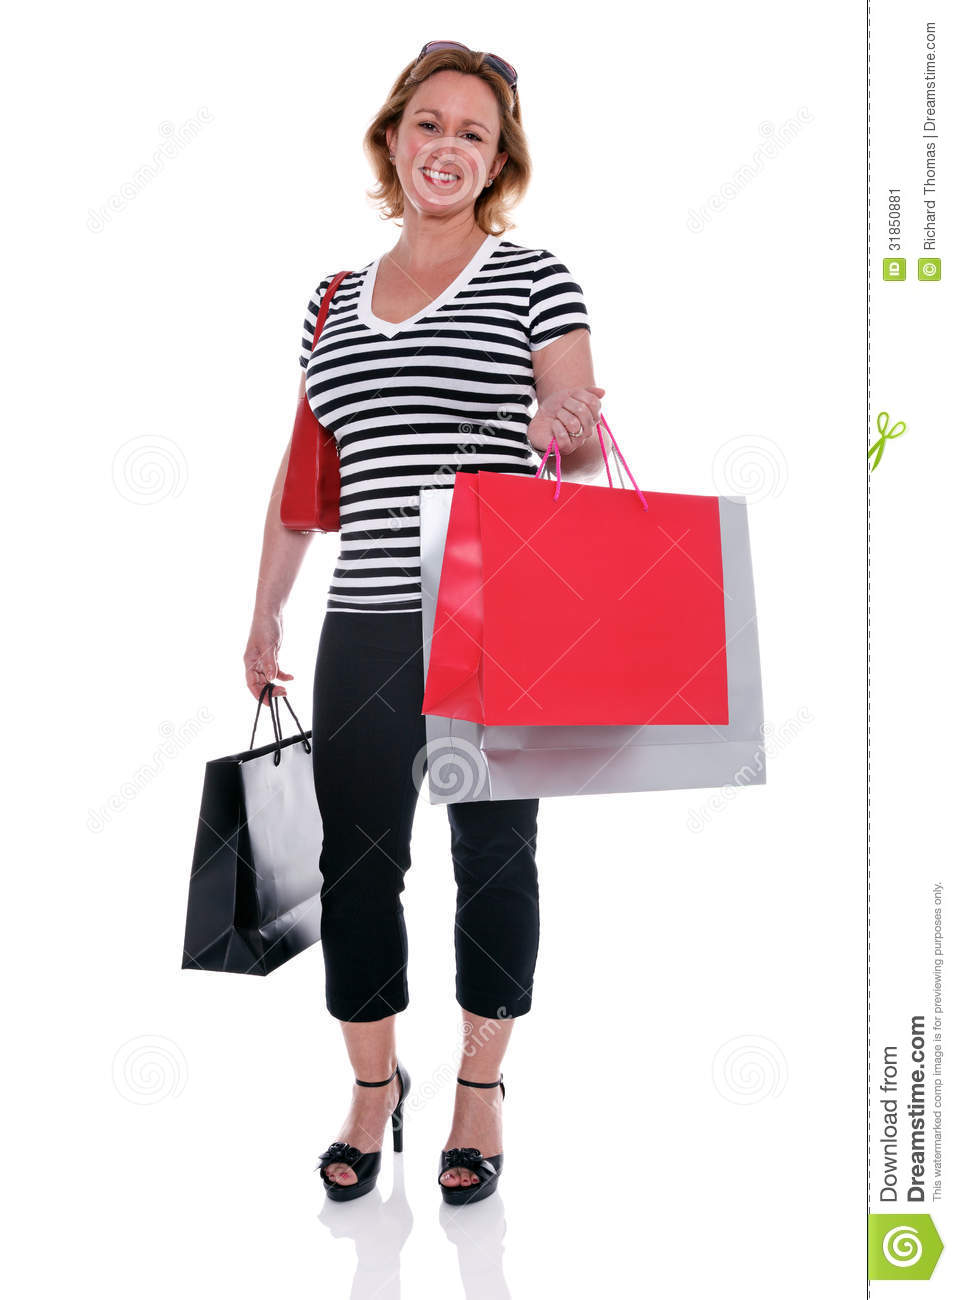 New Woman Holding Shopping Bags Royalty Free Stock Photo - Image 19017865